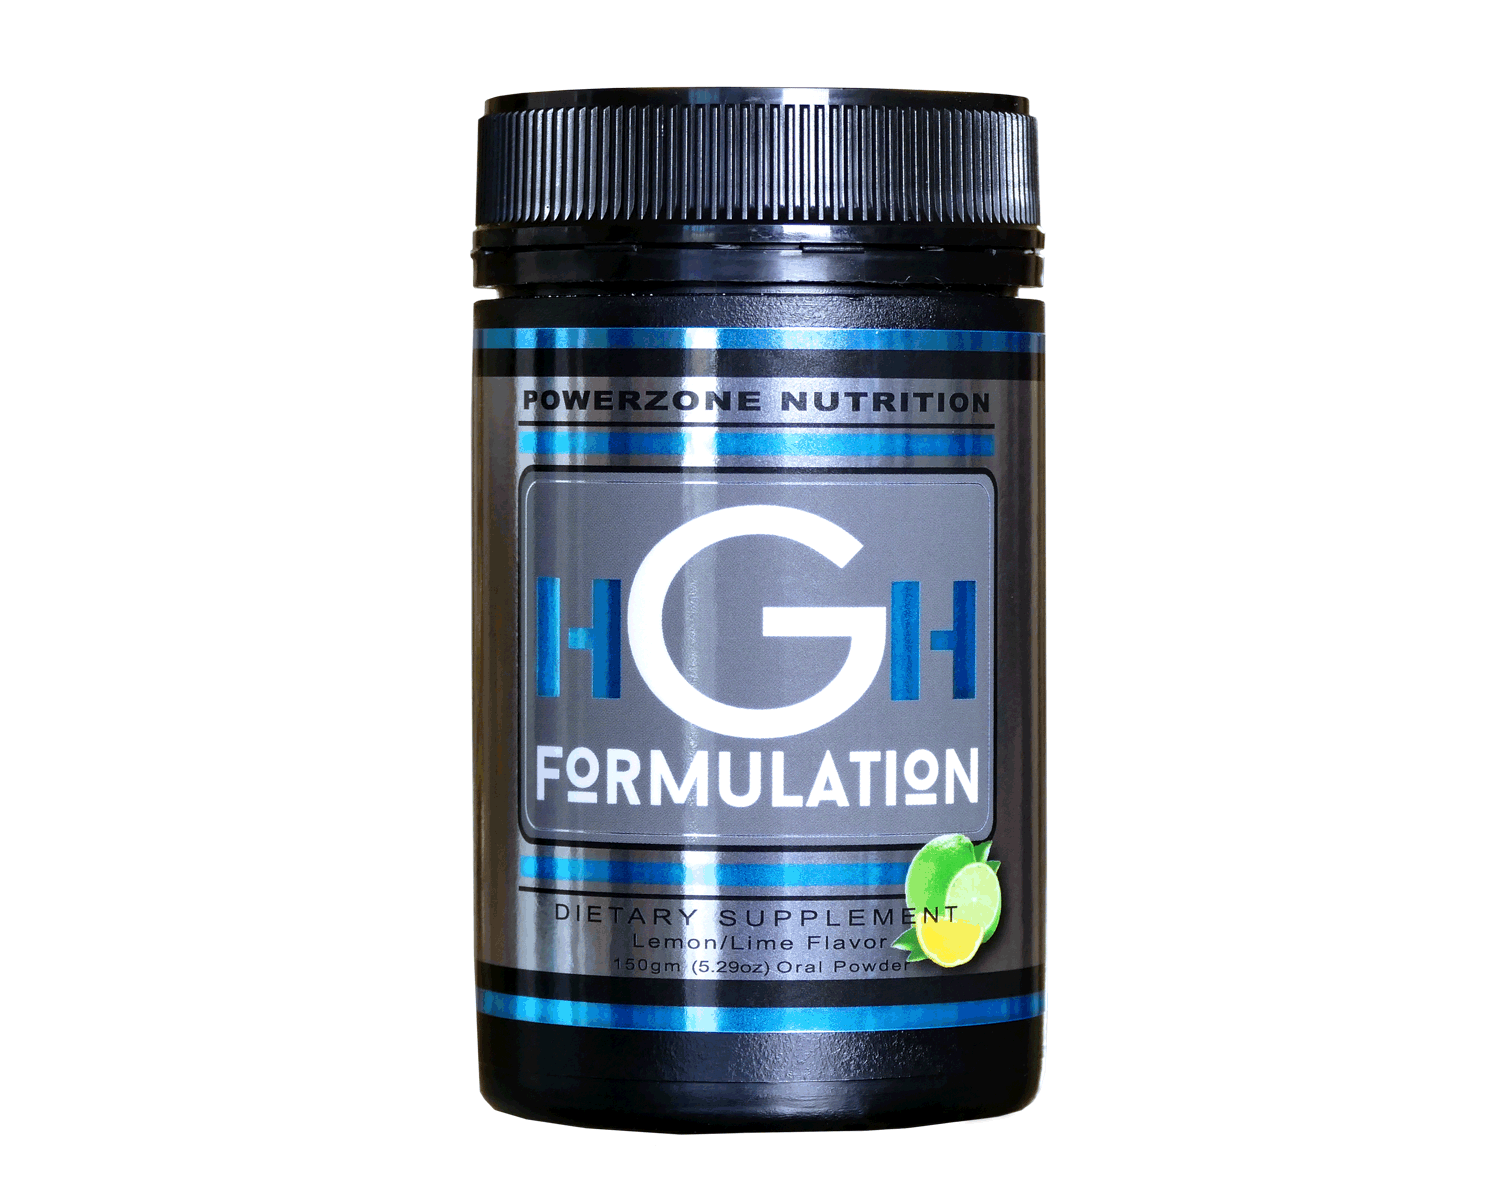 HGH Supplements | The Official HGH Formulation Product | The